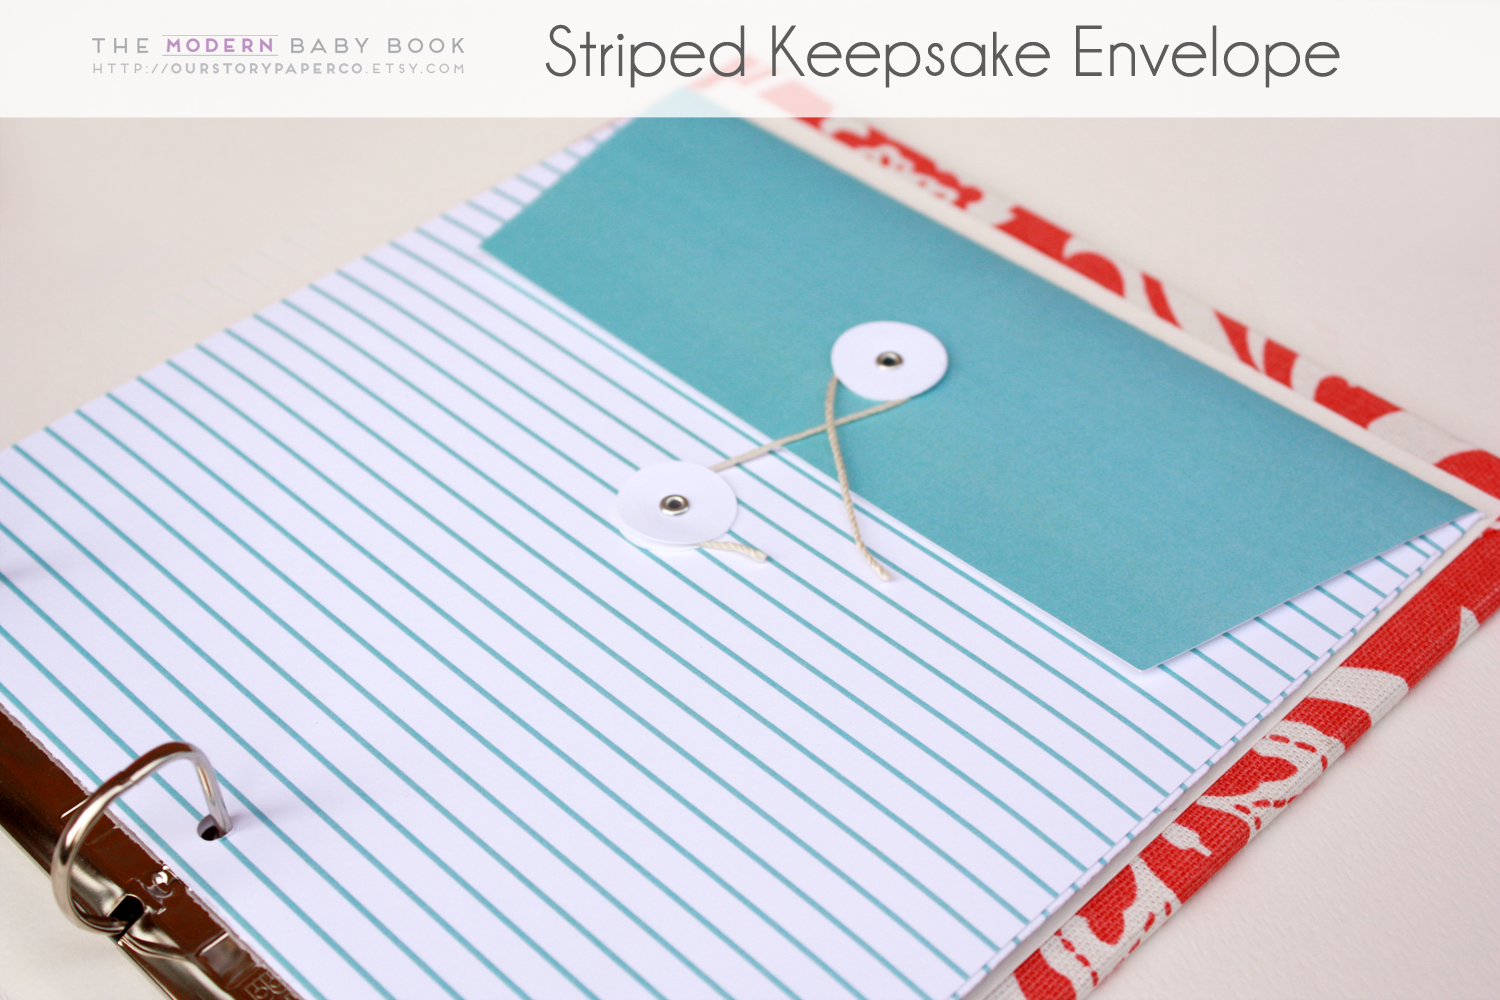 Colored Line on White Background Keepsake Envelopes - Our Story Paper Co.